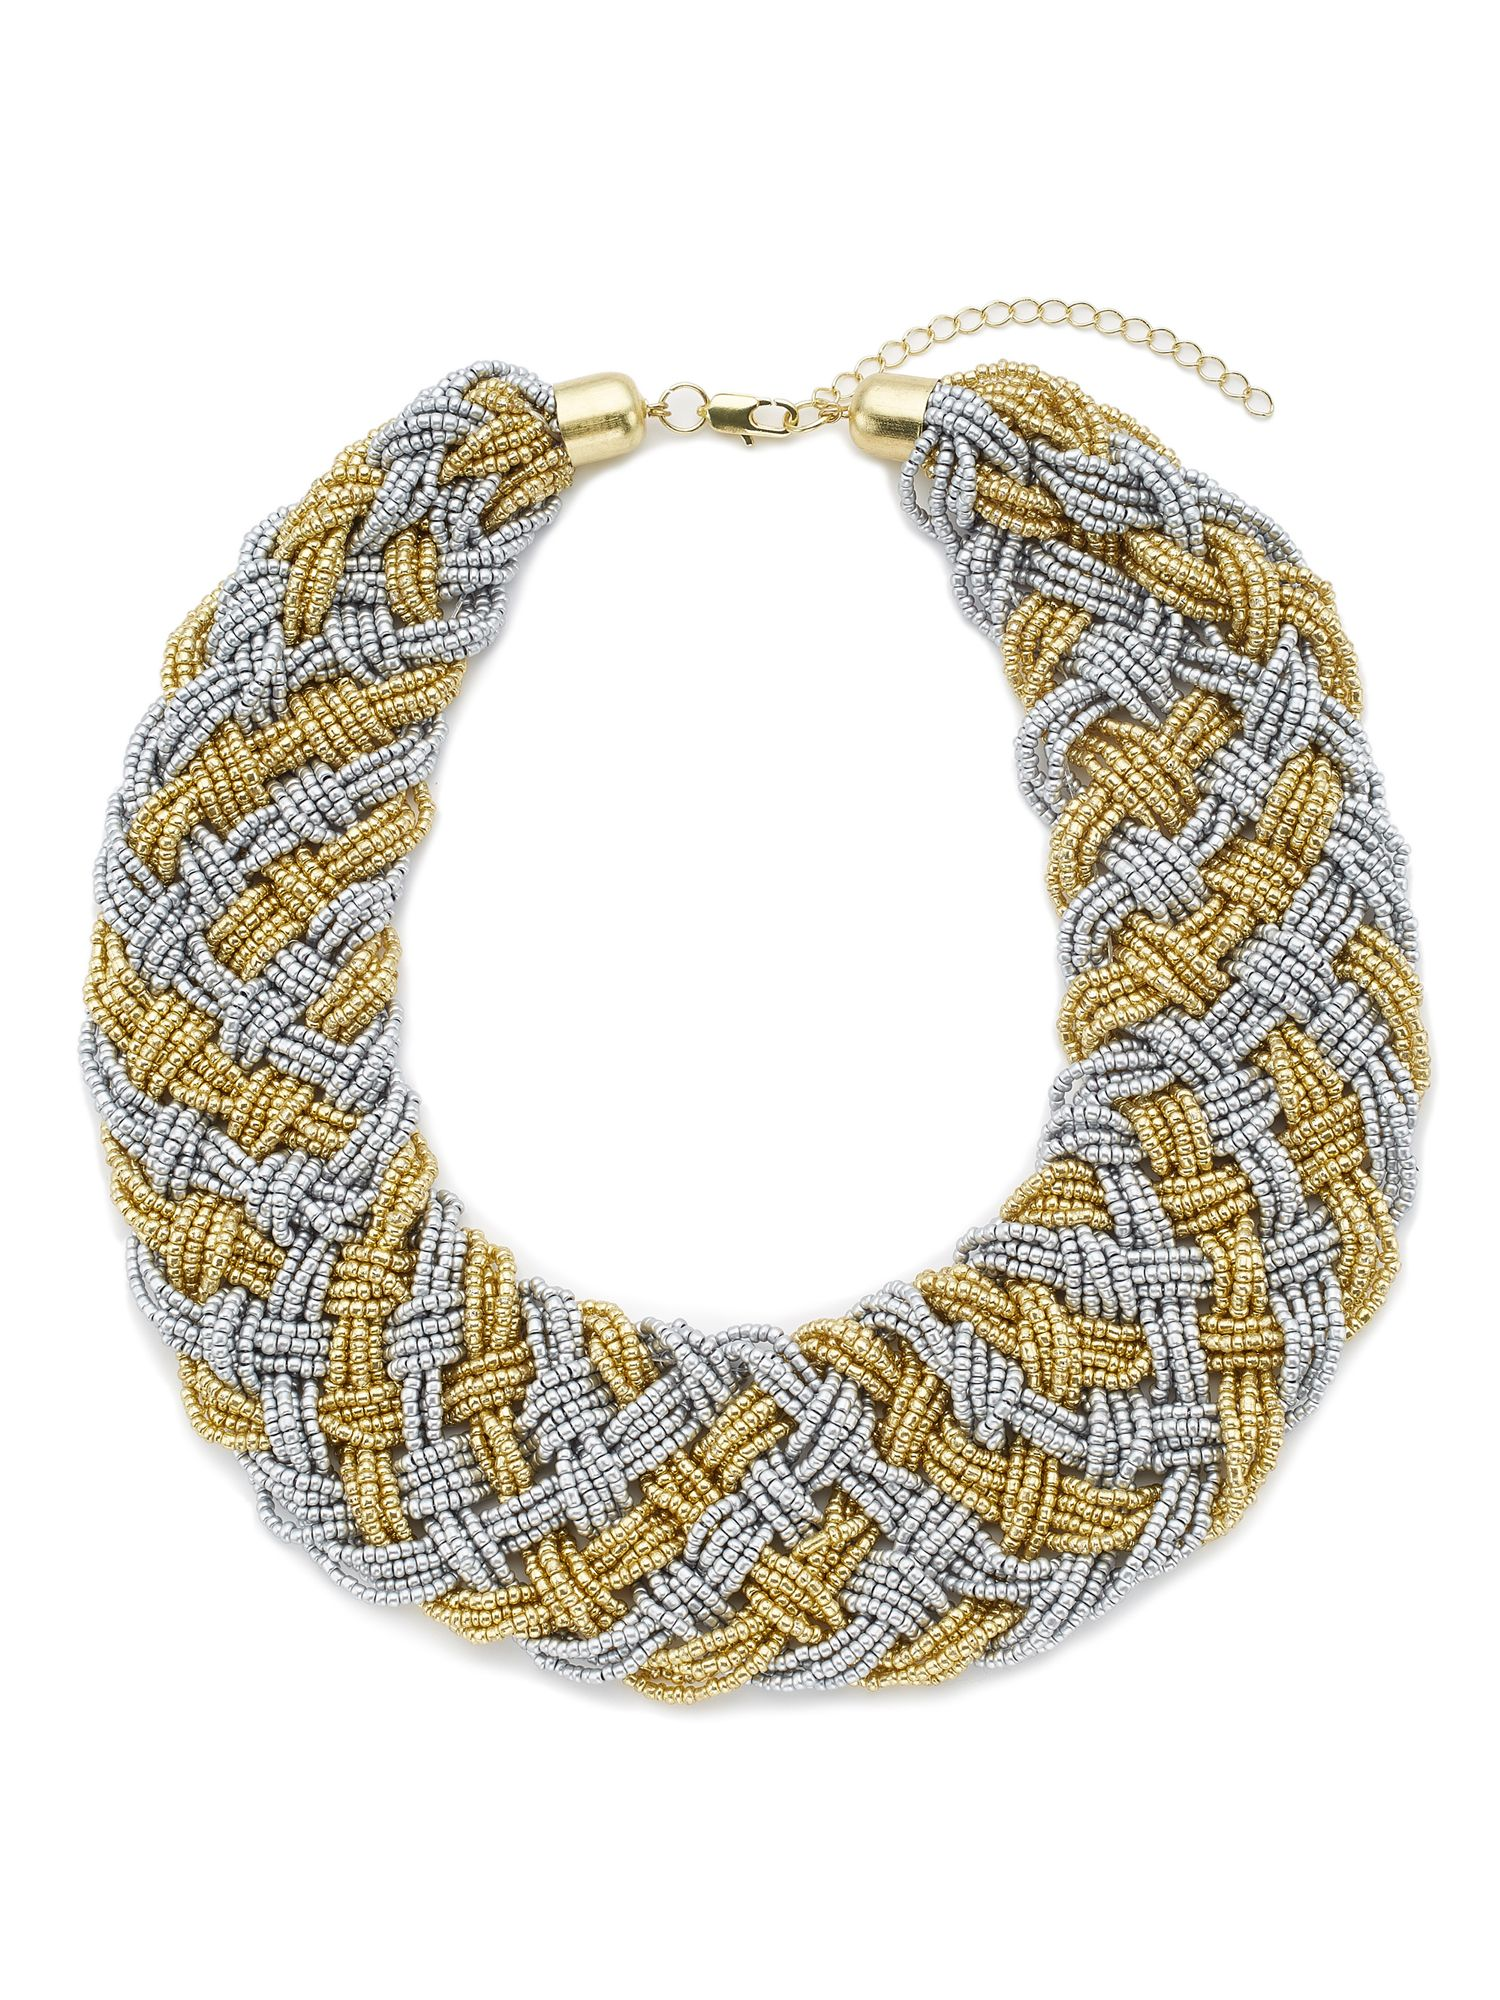 Jacques Vert Beaded Woven Necklace, Multi-Coloured